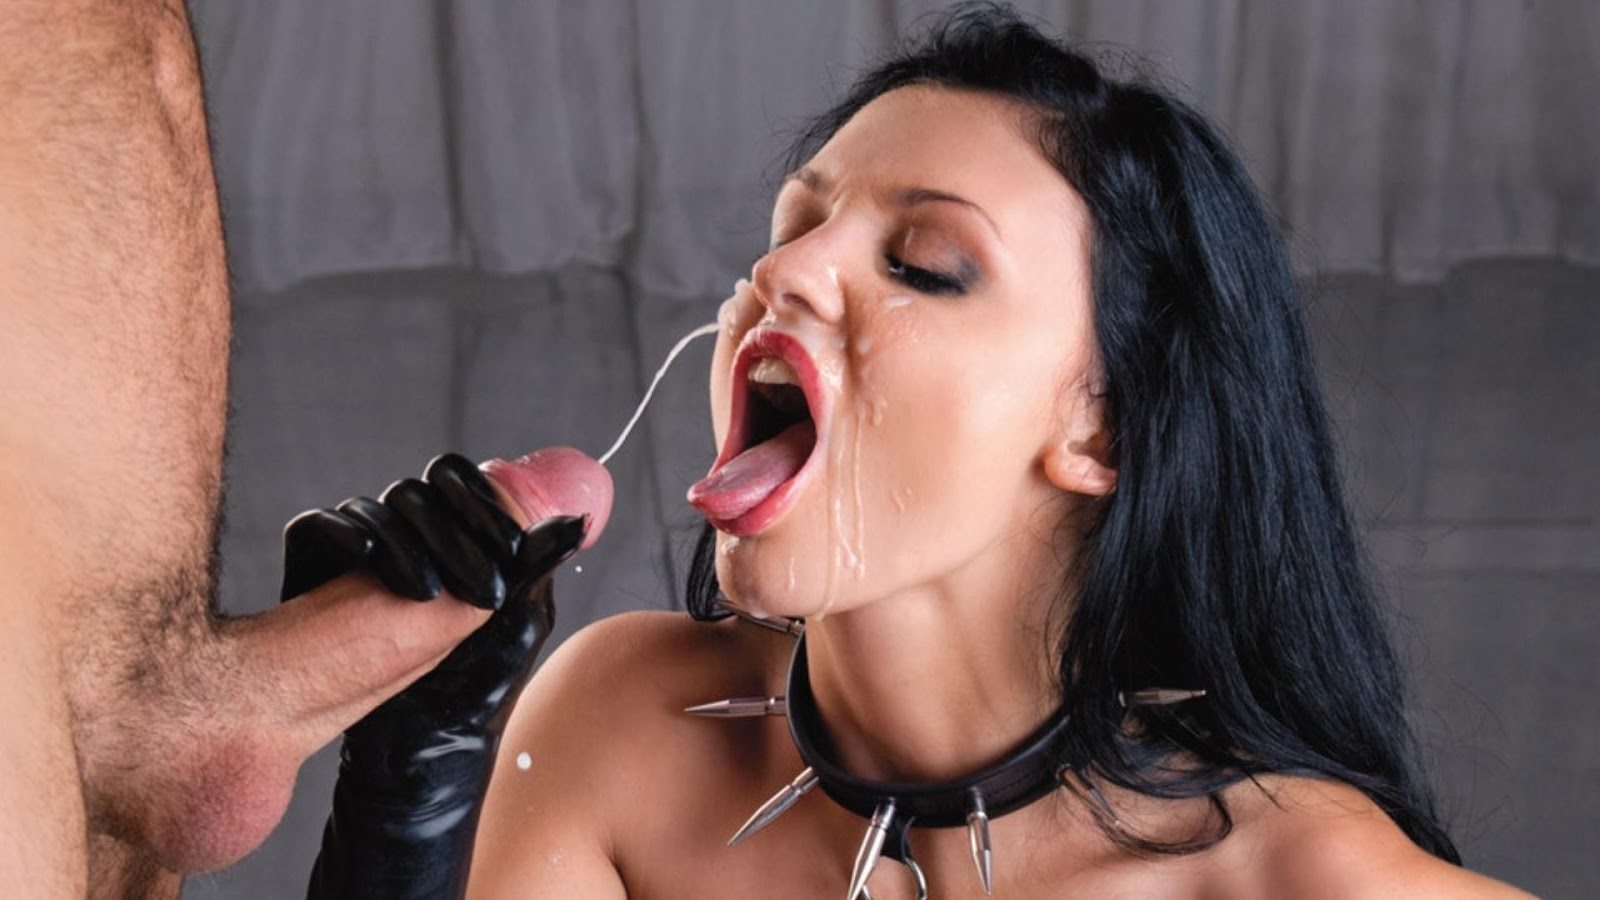 Hot. She's bdsm cumshot compilation porn!!!!!!!!!!!!!!!! Awesome! she